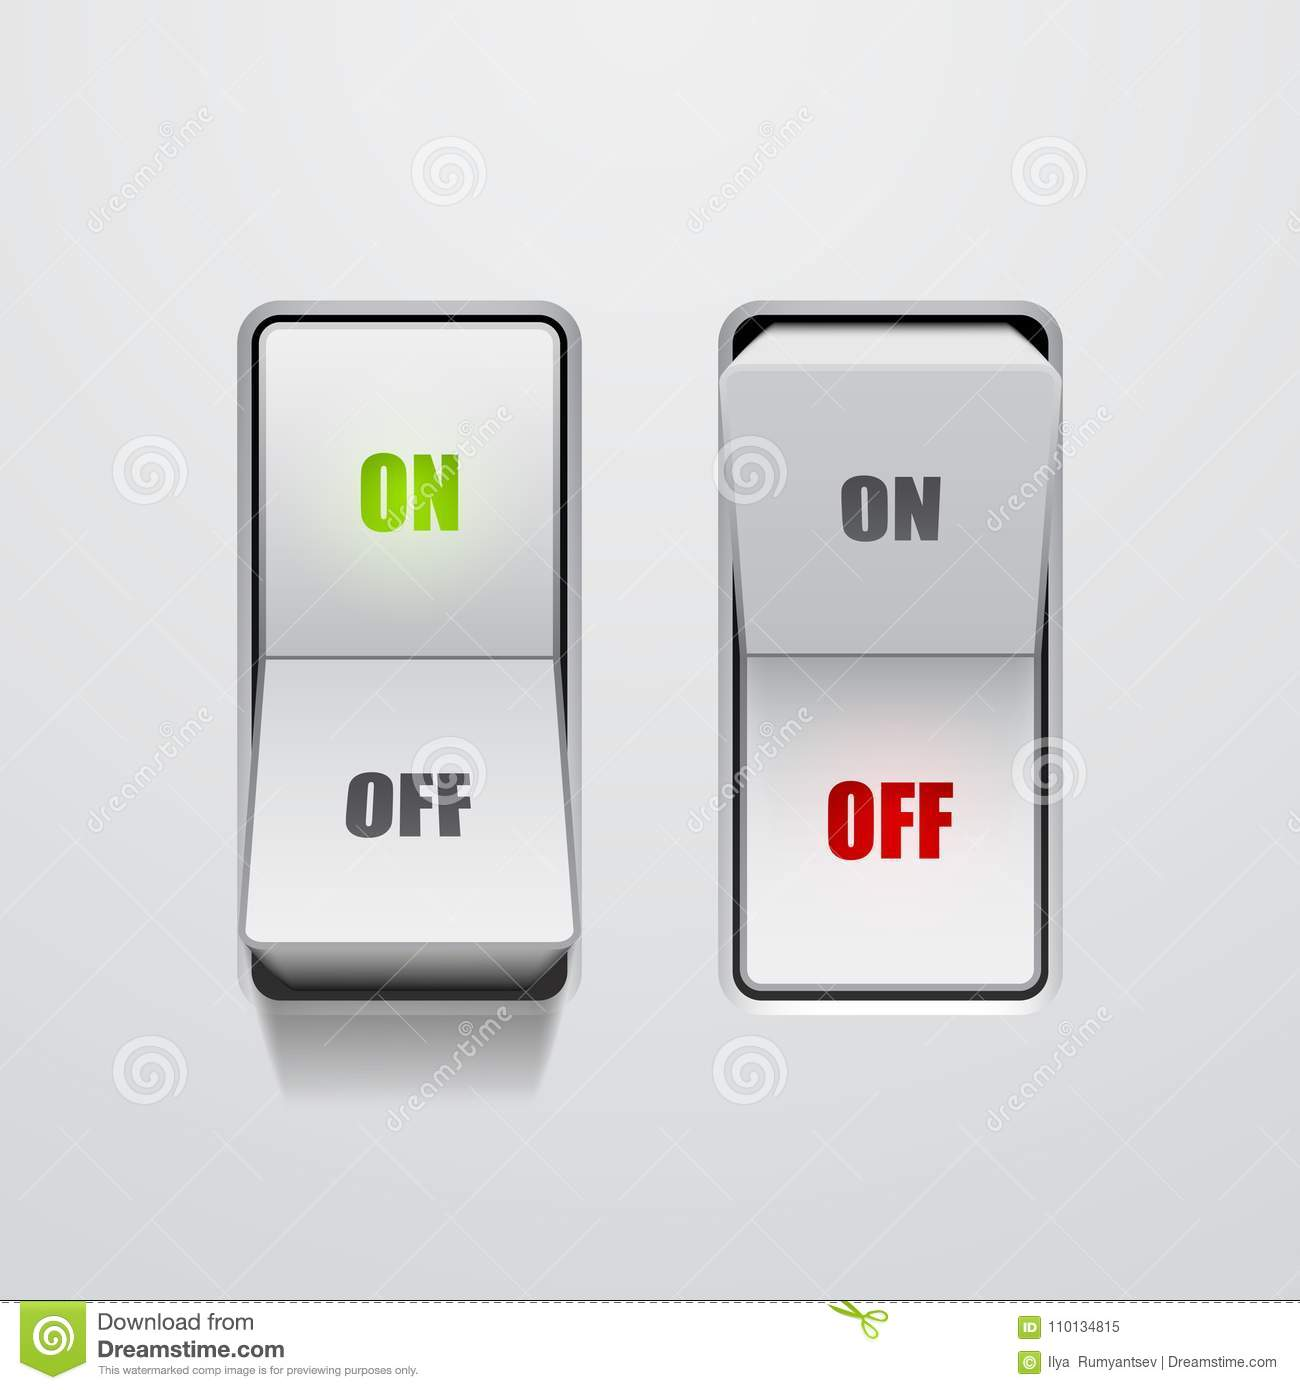 Set Of Toggle Switches In On And Off Positions Stock Vector